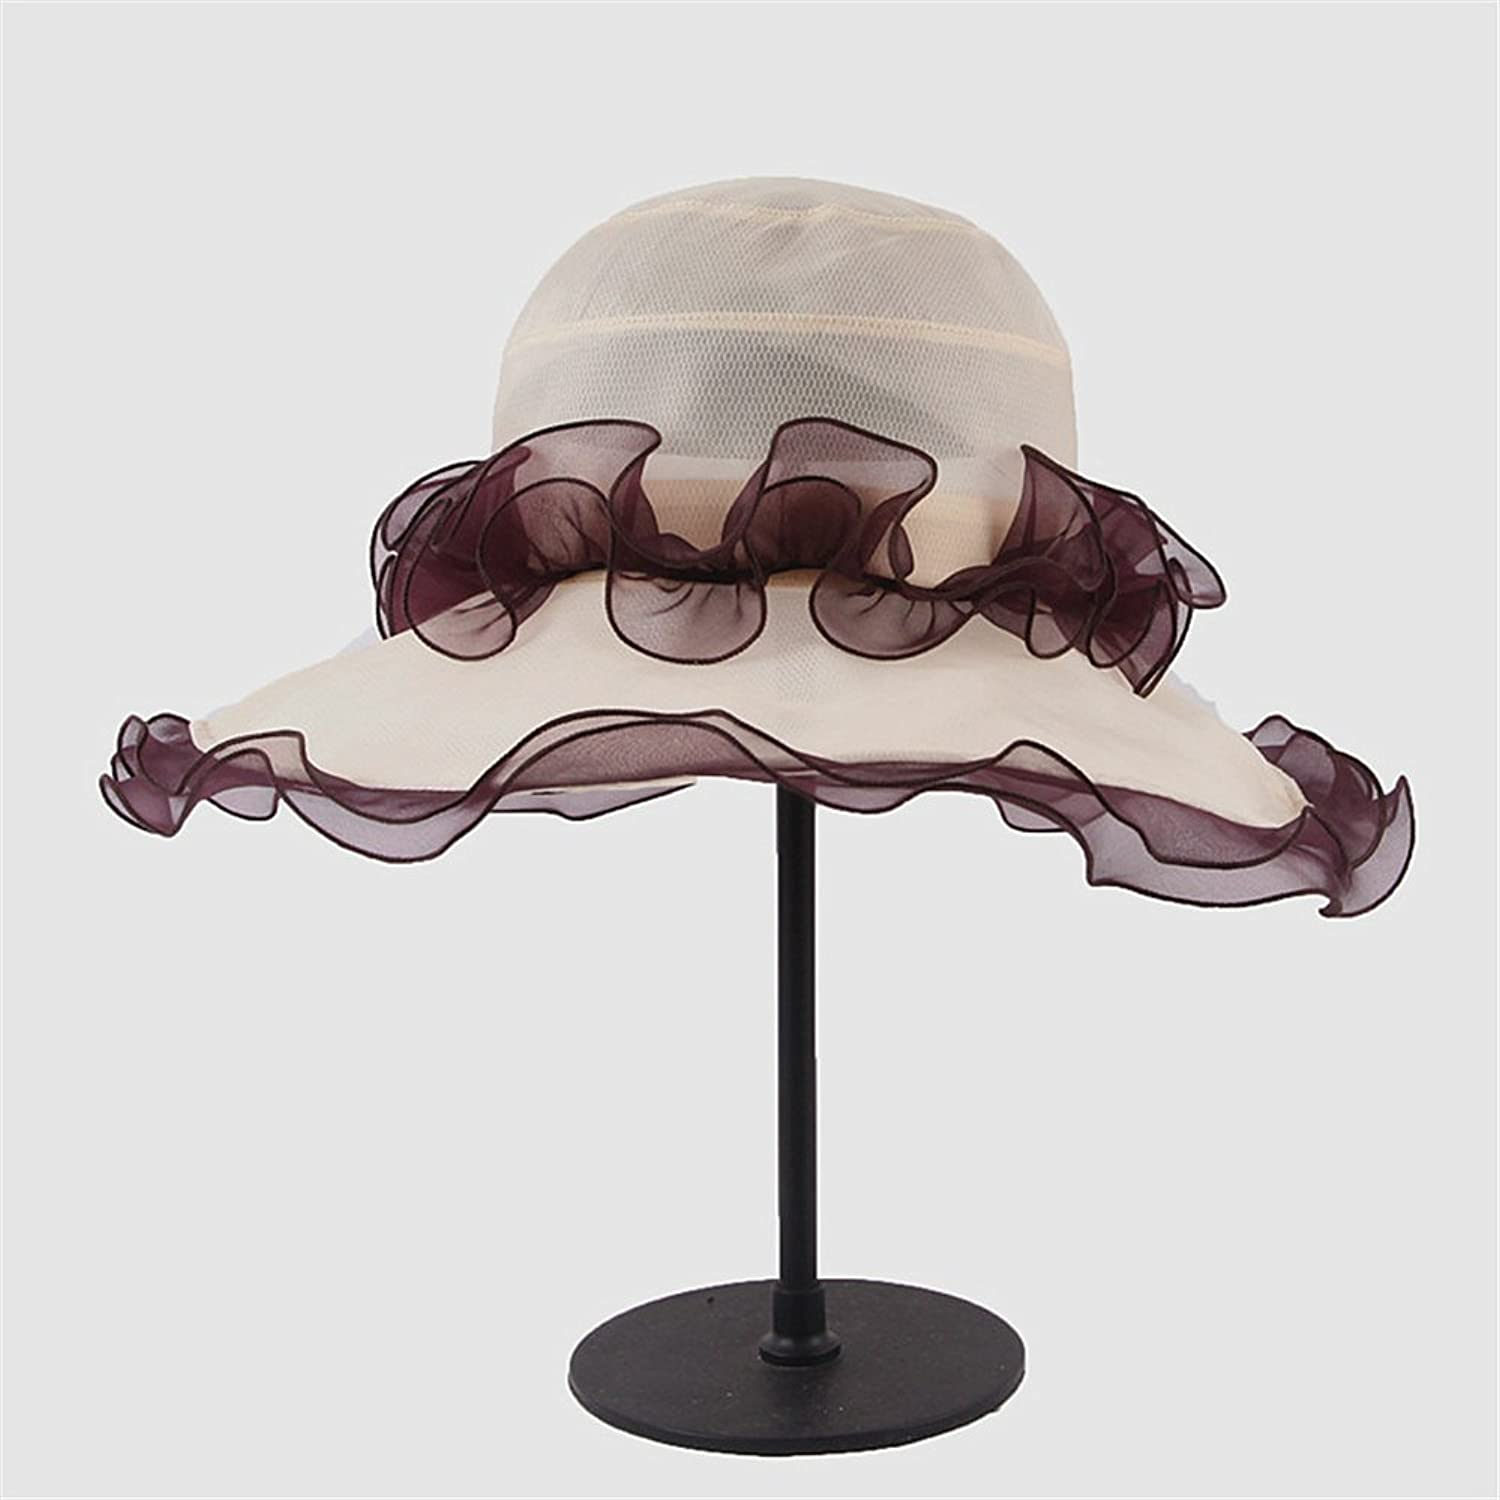 Women's Hat Silk Hat of Sunblock Can Be Folded Into Mulberry Silk Hat (color   Beige)